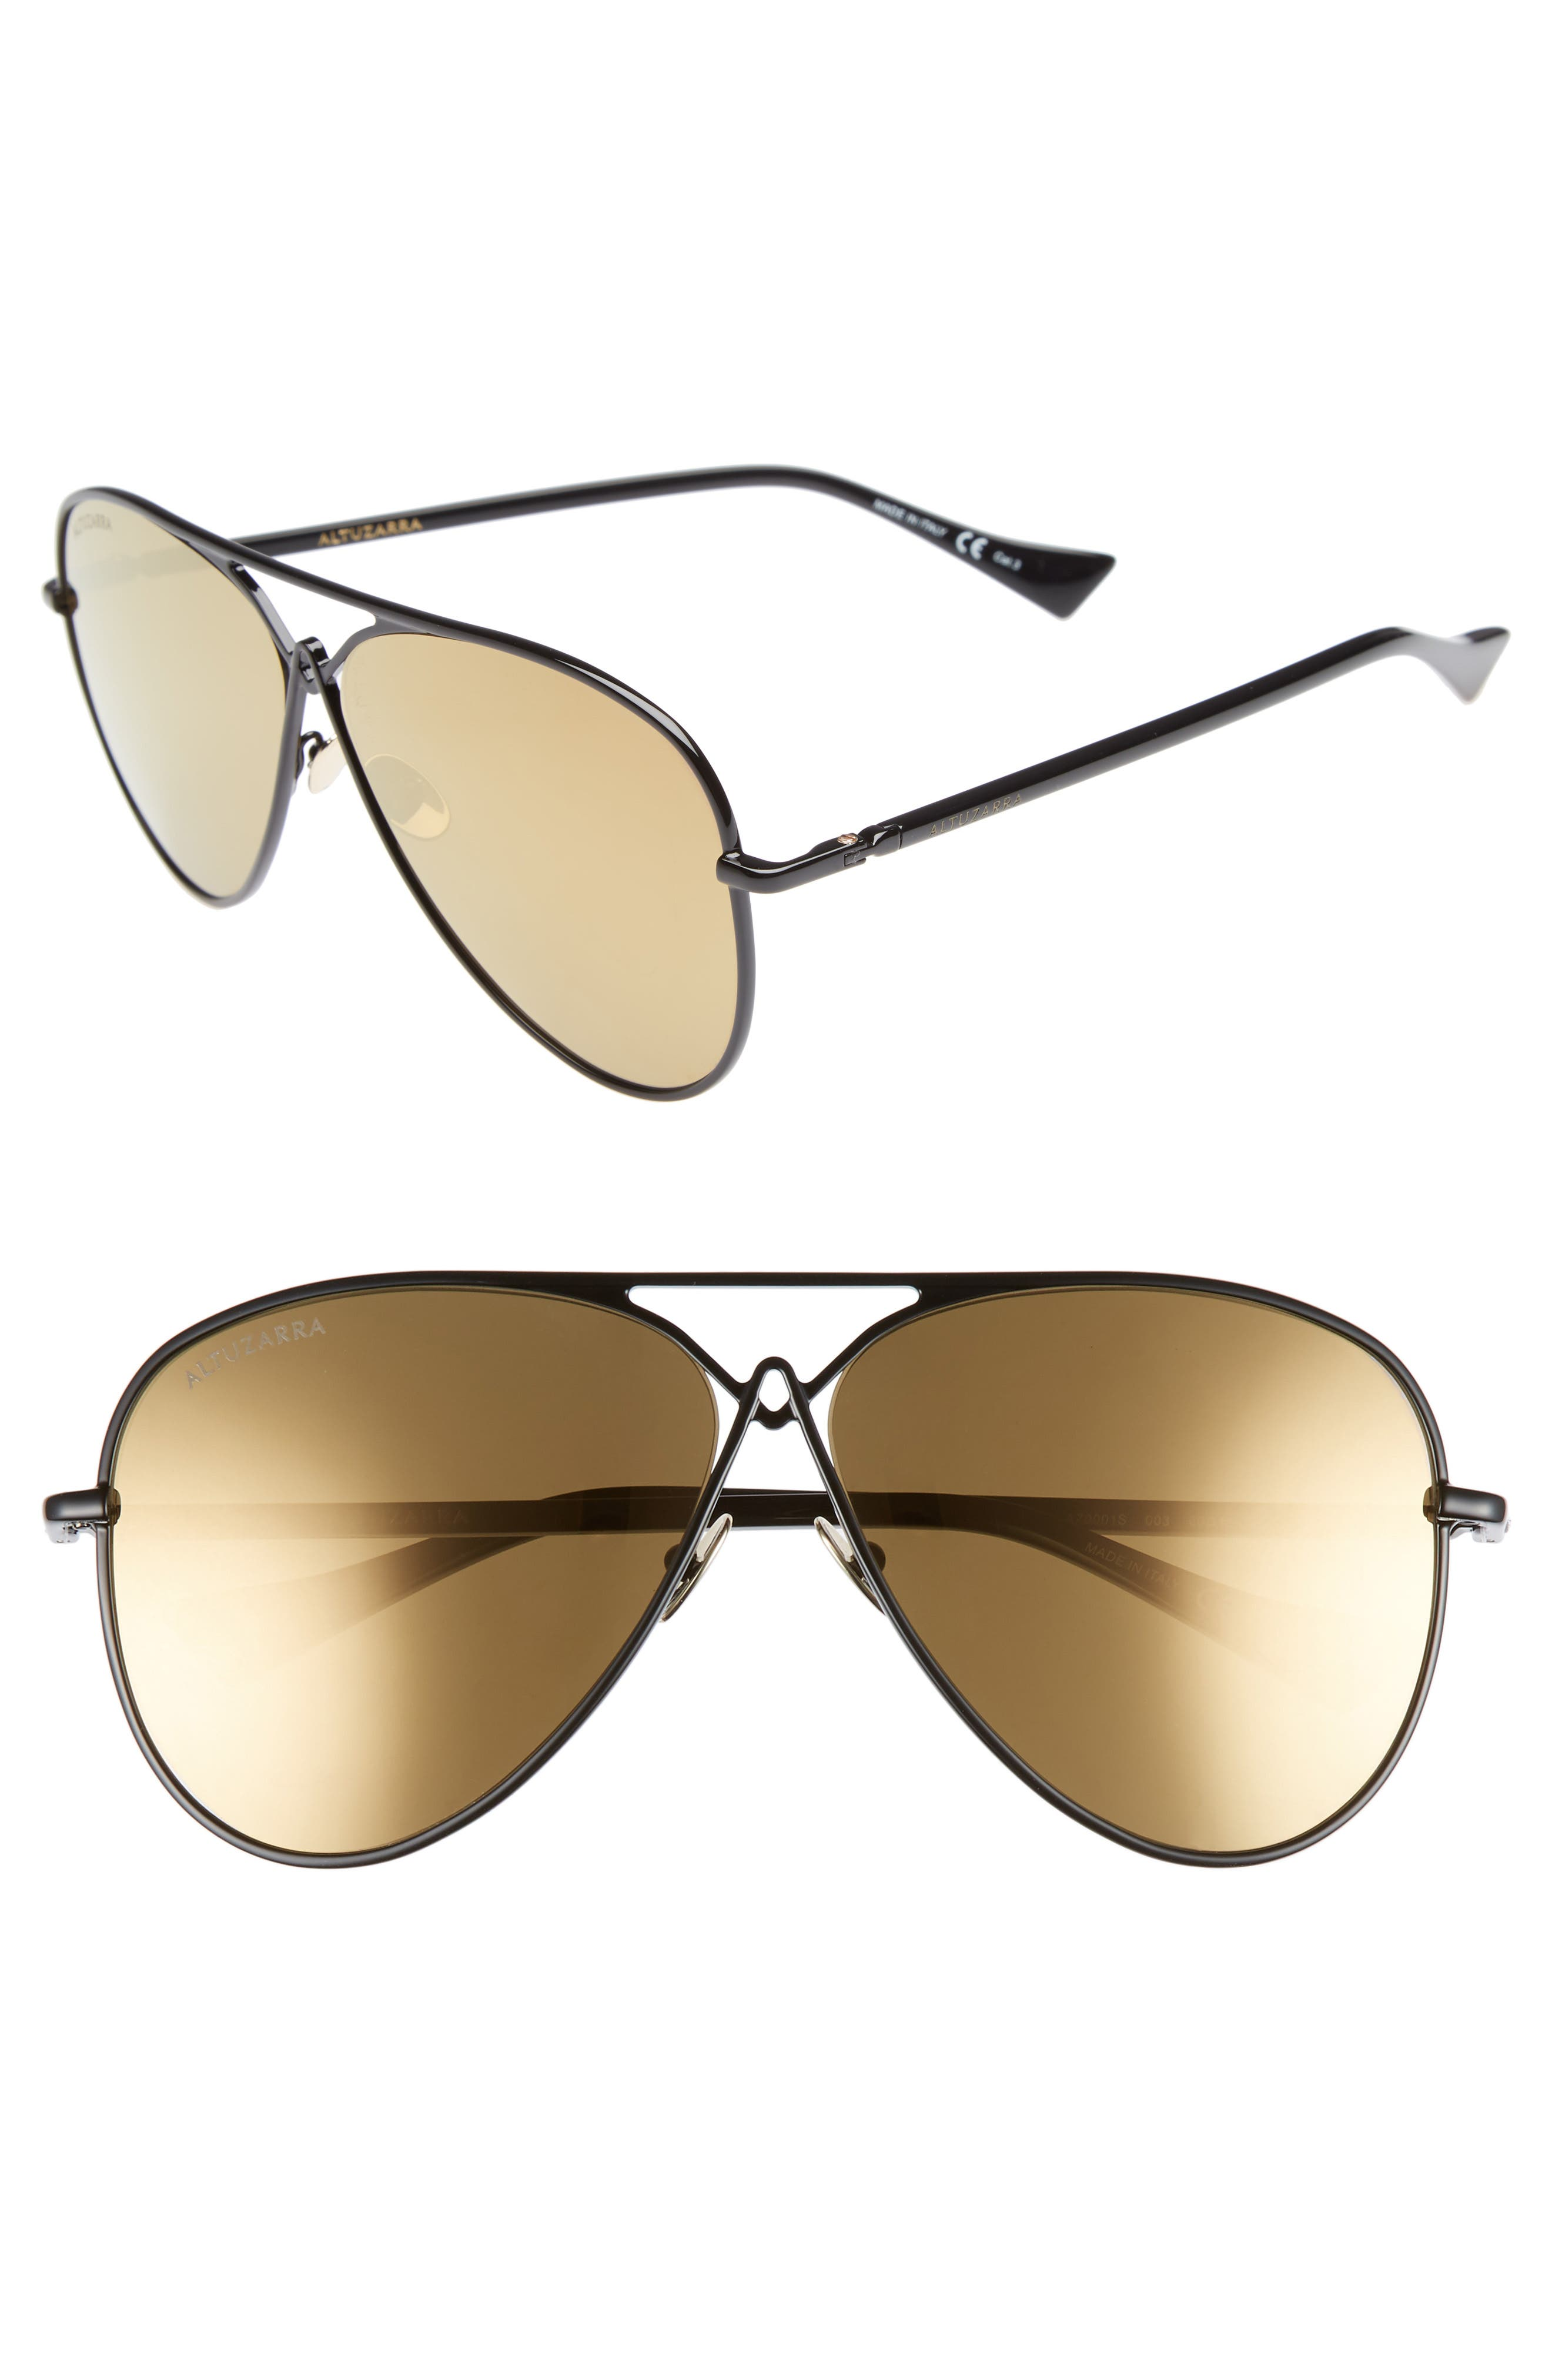 60MM METAL AVIATOR SUNGLASSES - BLACK